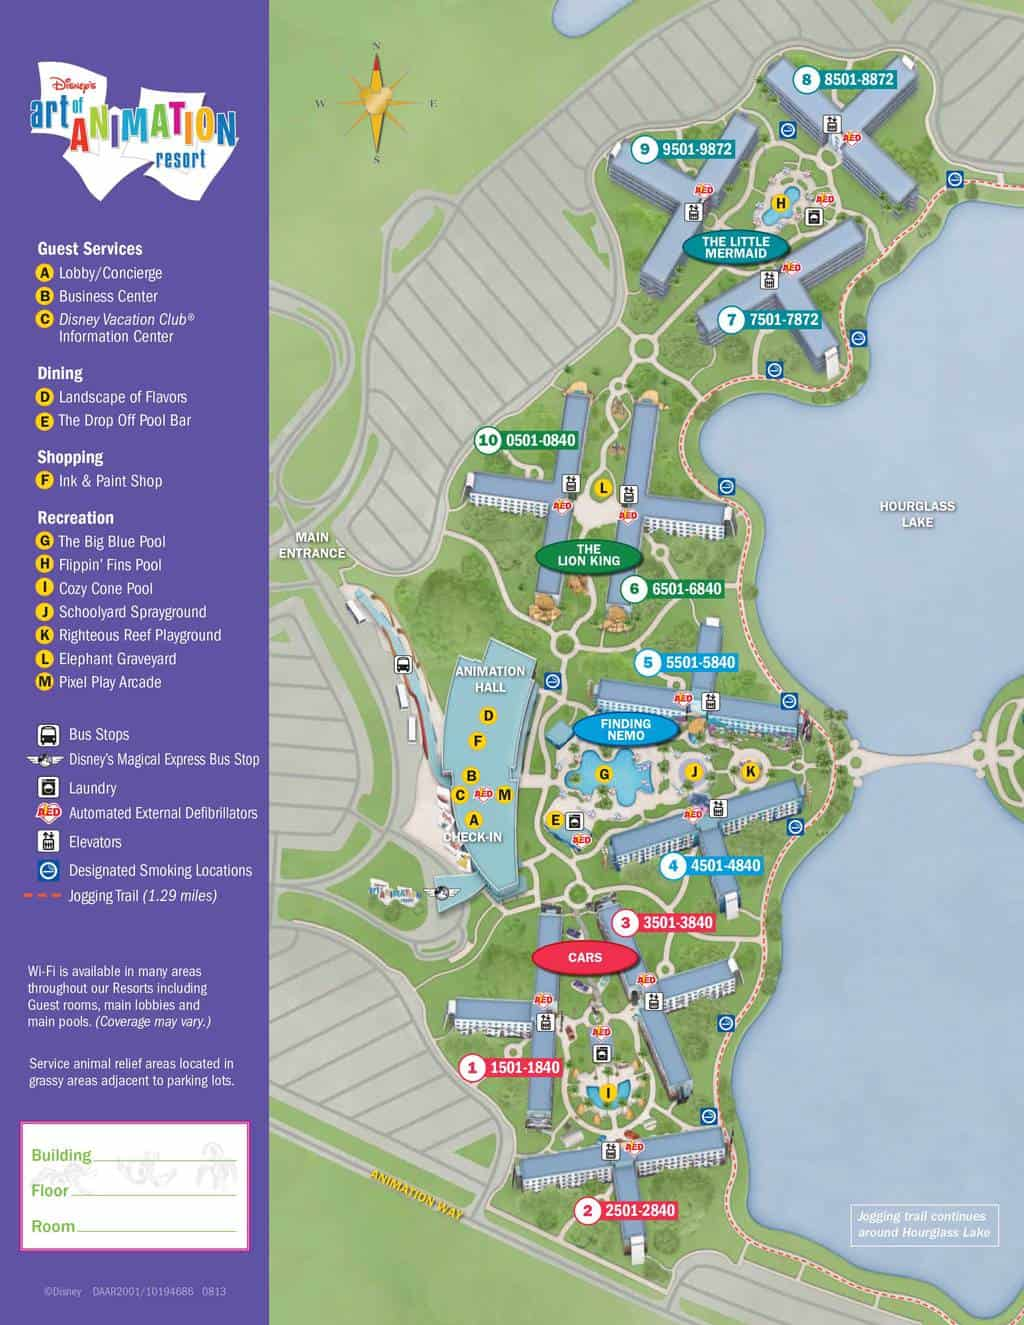 disneyland map app with Art Of Animation Resort Map on 520301477 likewise 72157617483863146 besides Parc Asterix besides Disneys New Magic Kingdom Game Now Available For Windows Phone as well Royalty Free Stock Image Disneyland Train Orlando Florida Image28395266.